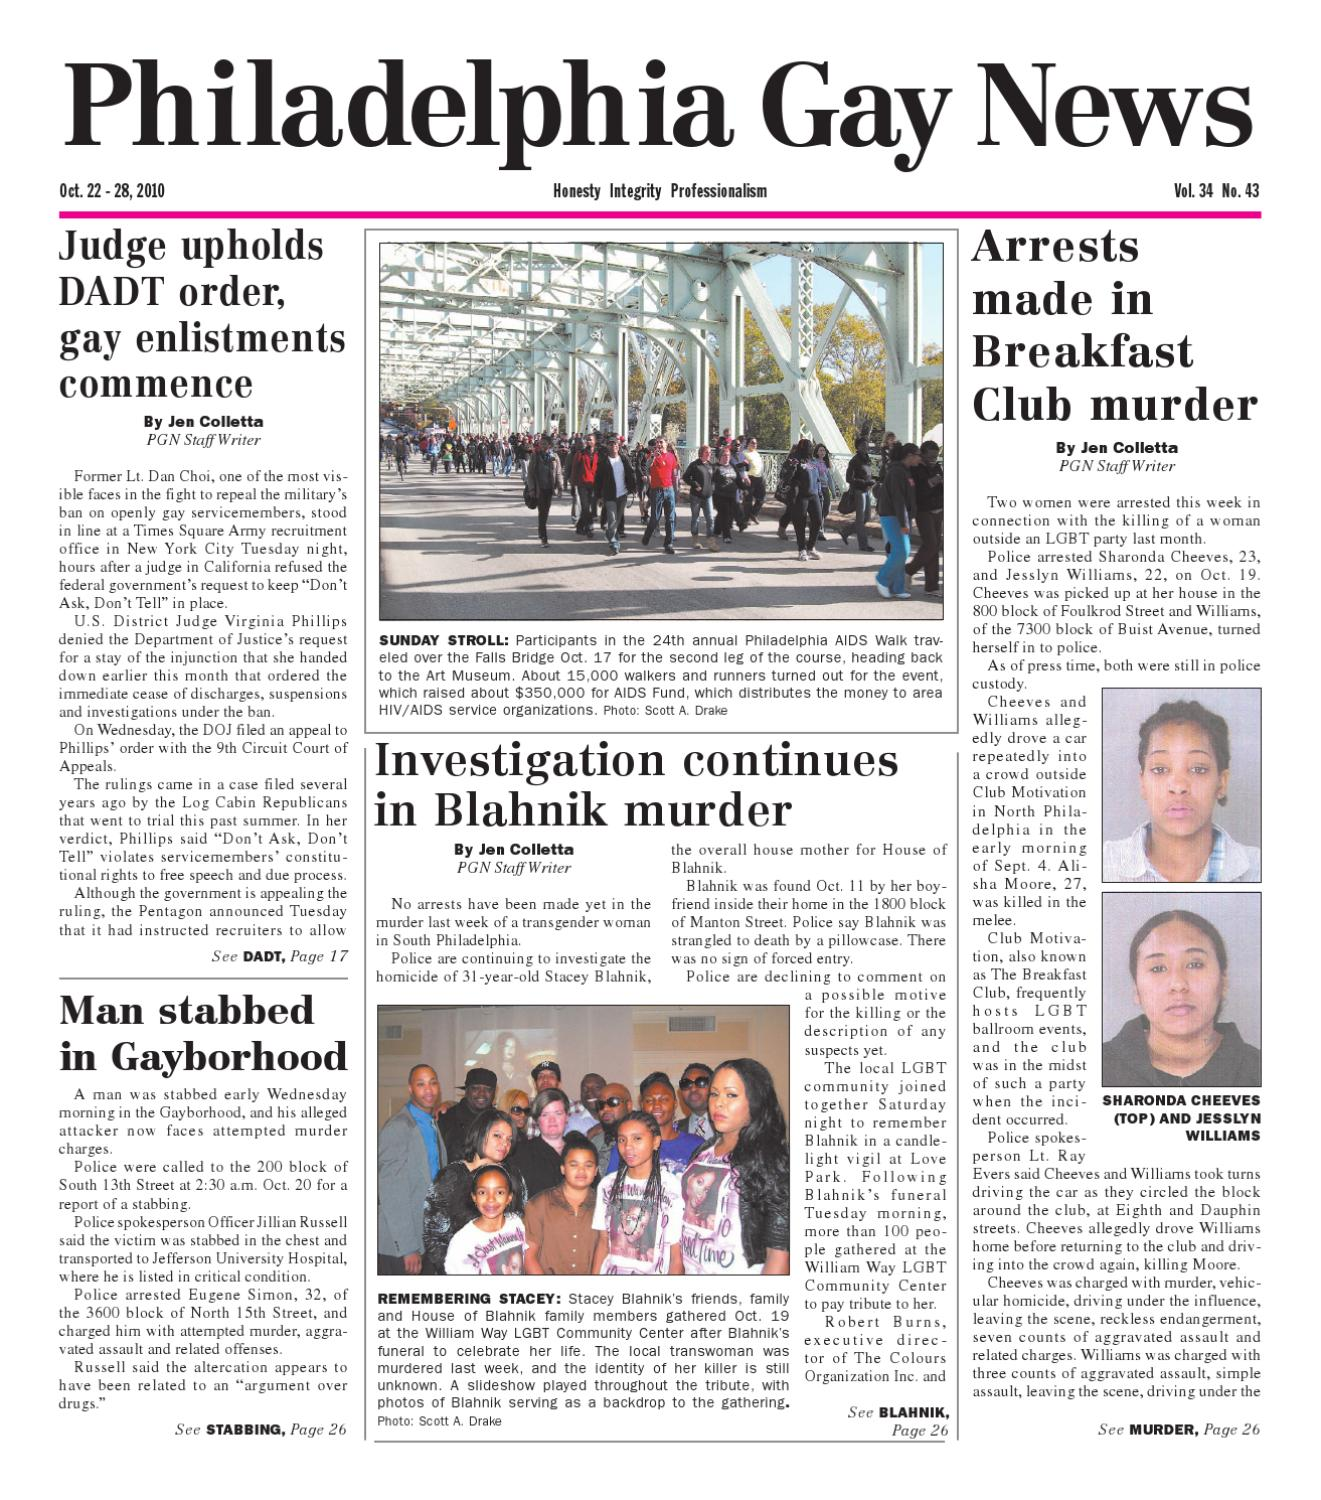 PGN Oct. 22-28, 2010 edition